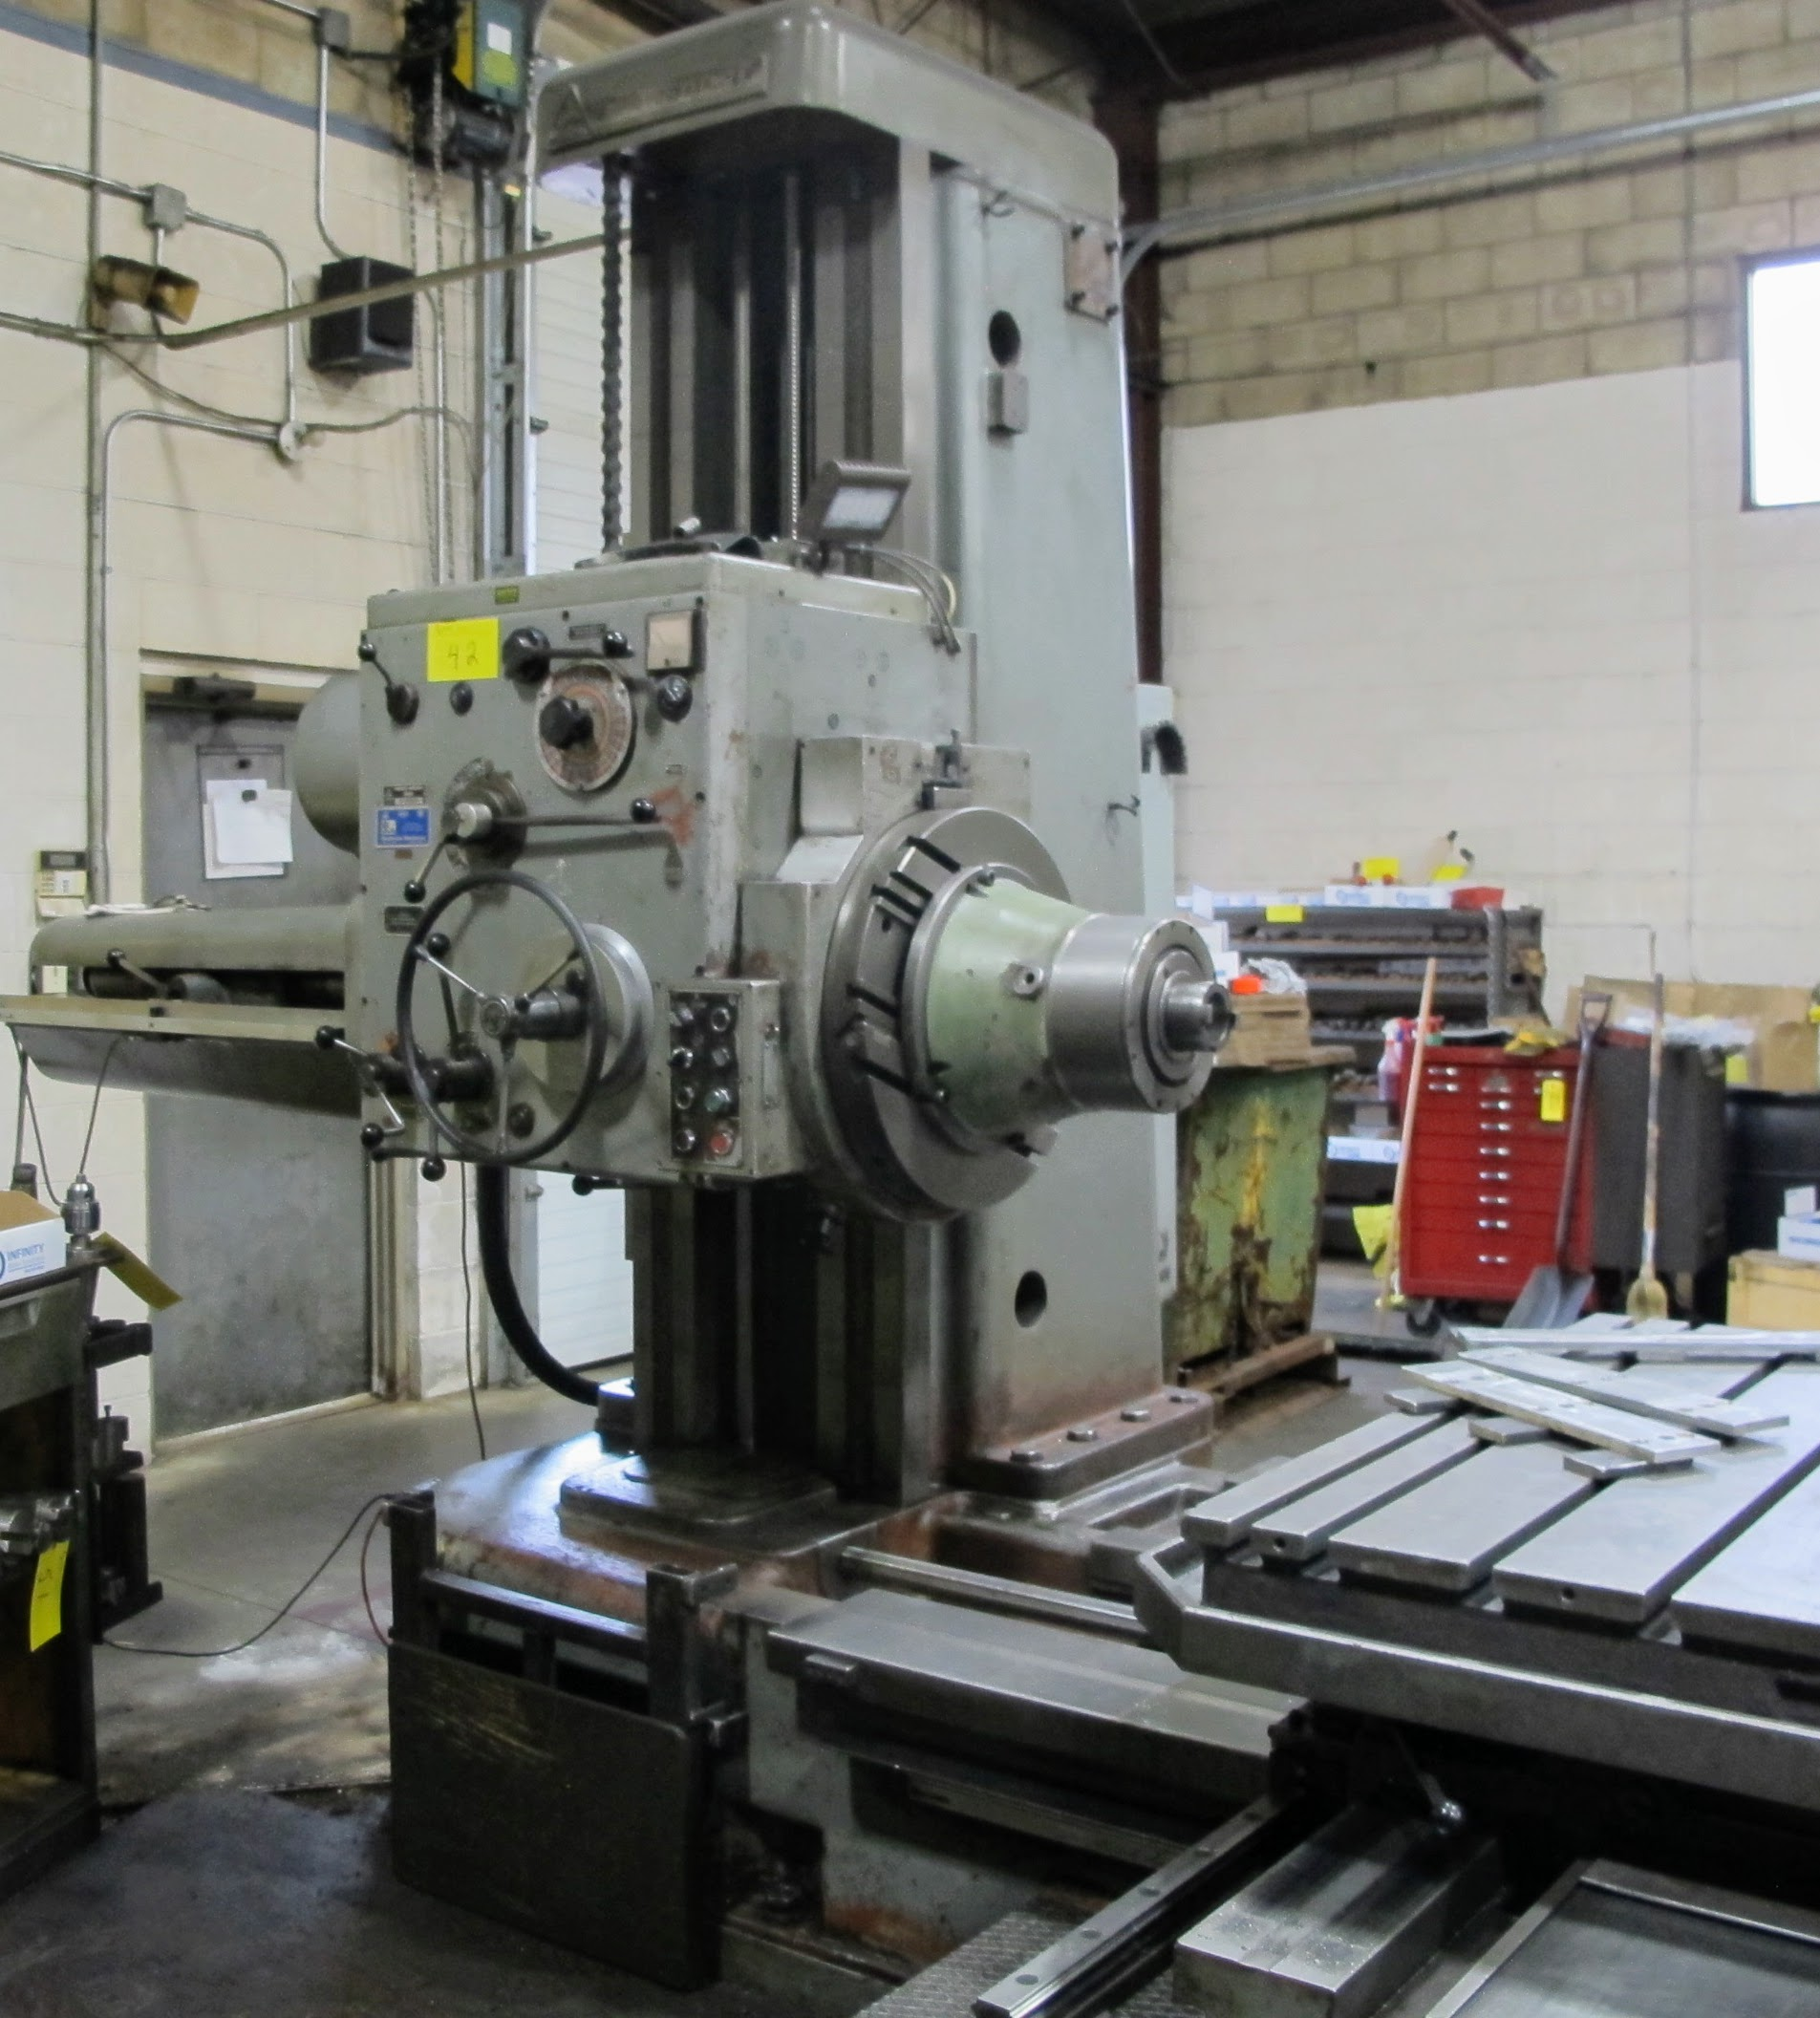 "TOS W100 HORIZONTAL BORING MILL, ACU-RITE 4-AXIS DRO, 4"" SPINDLE, 14 TO 1,120 RPM, 49"" X 49"" POWERED - Image 10 of 12"